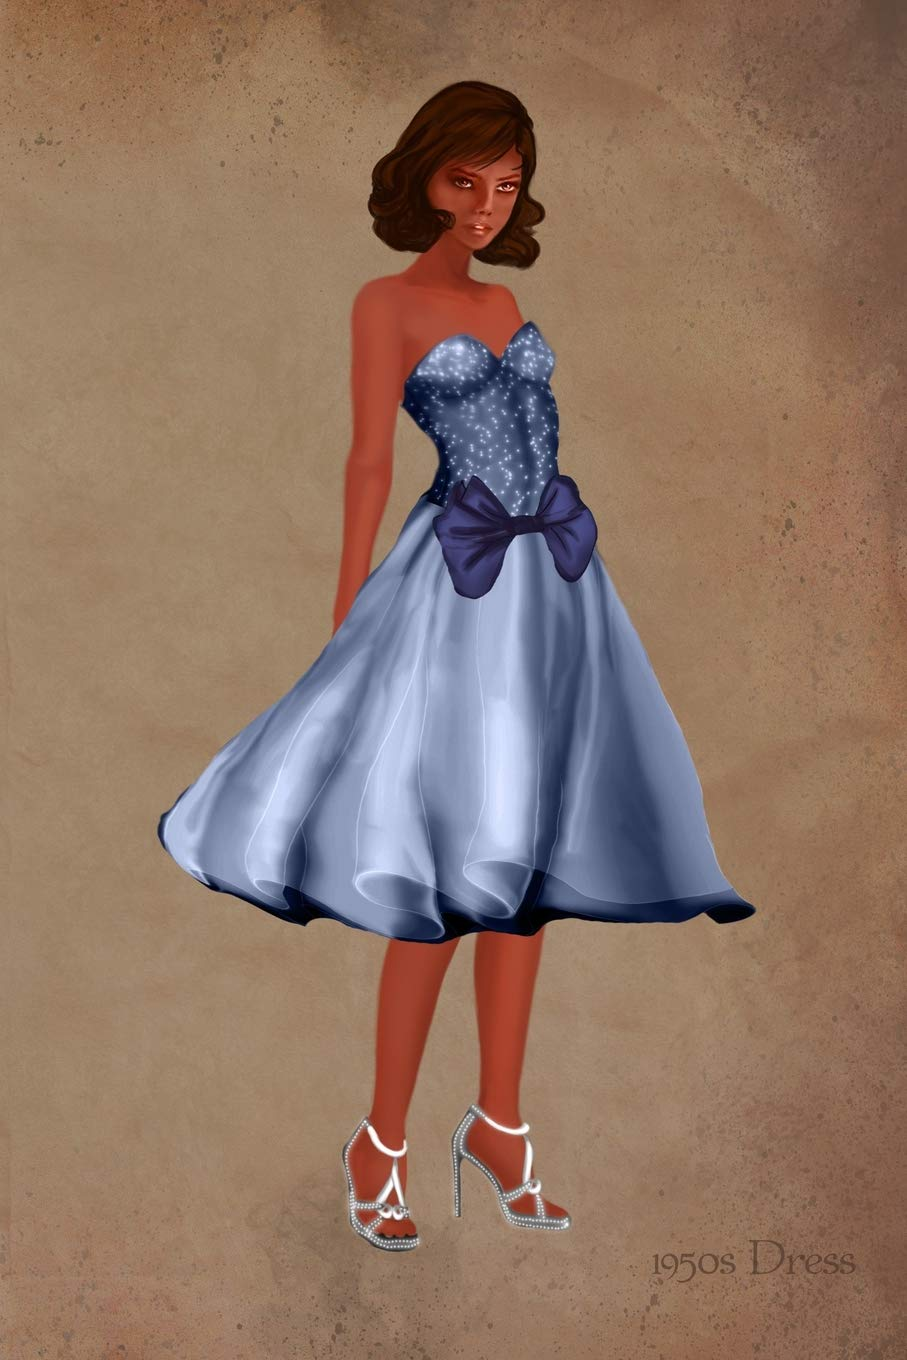 1950s Dress: Blue Strapless Dress